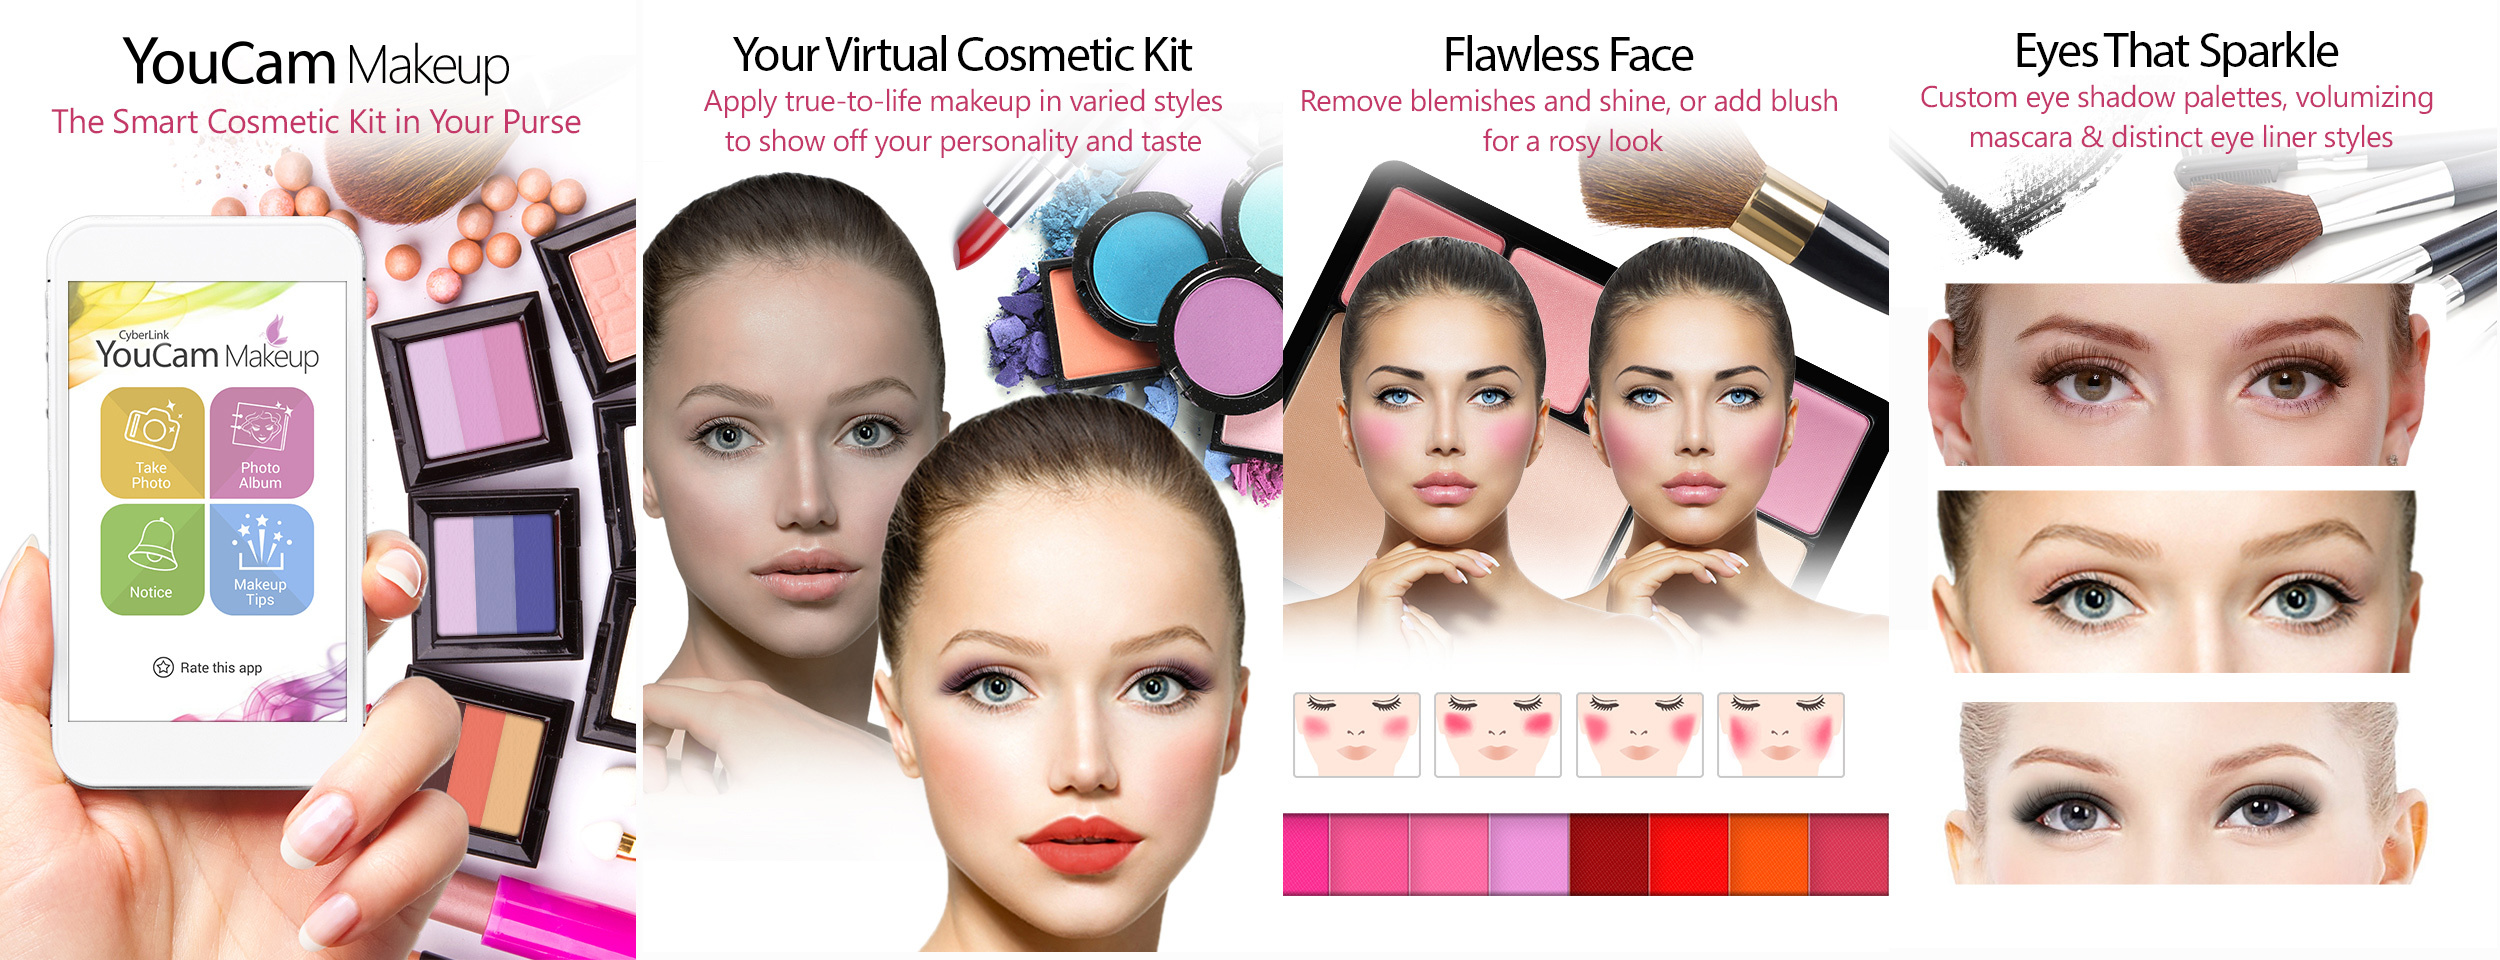 CyberLink Announces New YouCam Makeup App – the Smart Cosmetic Kit